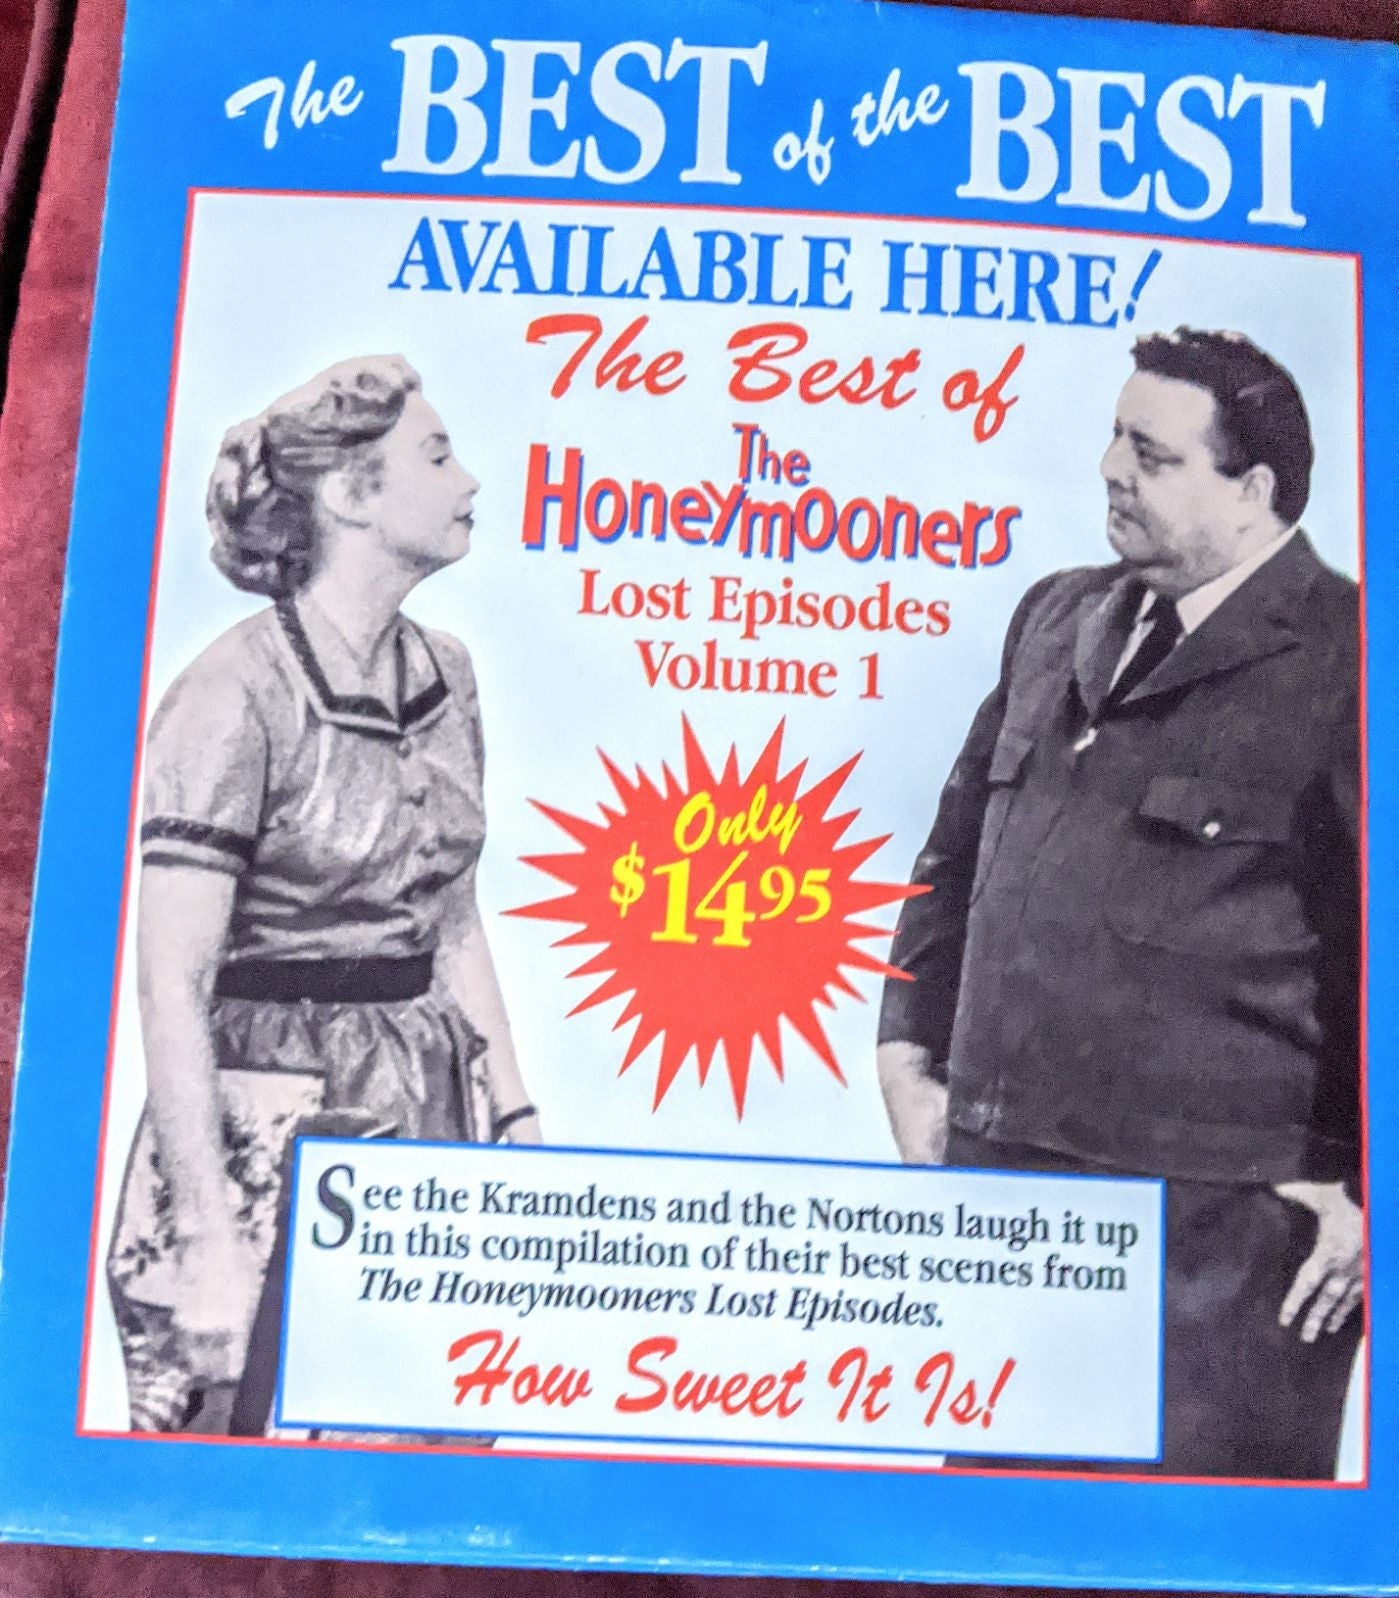 Honeymooners Tent stand ad